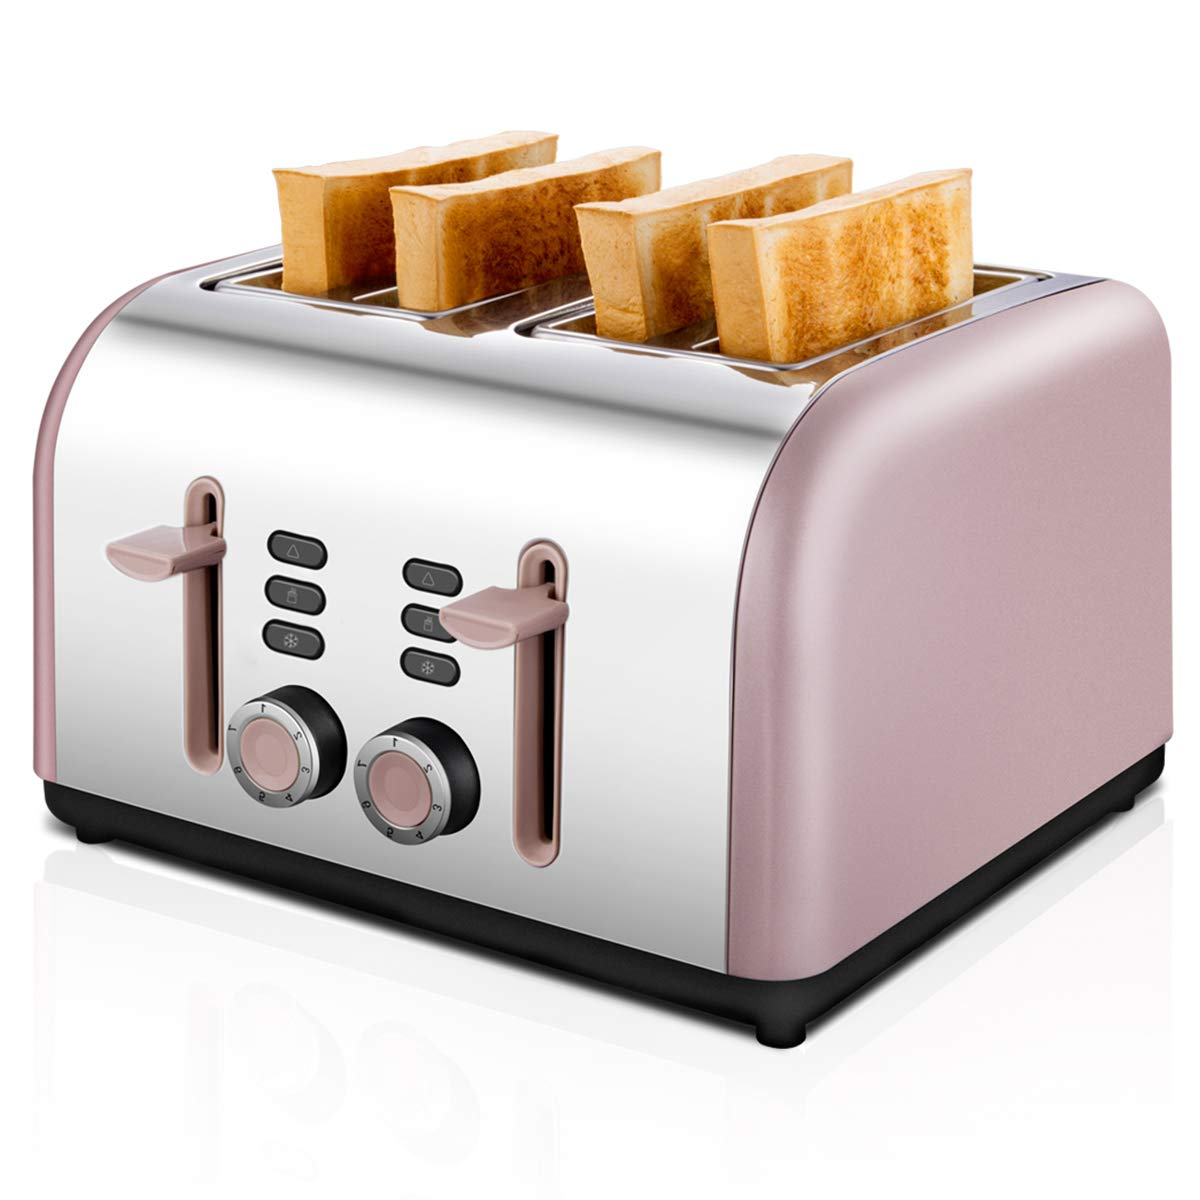 4 Slice Toaster, CUSIBOX Stainless Steel Toaster Four Wide Slots with 7 Bread Browning Settings, REHEAT/DEFROST/CANCEL Function, 1400W, Pink Gold